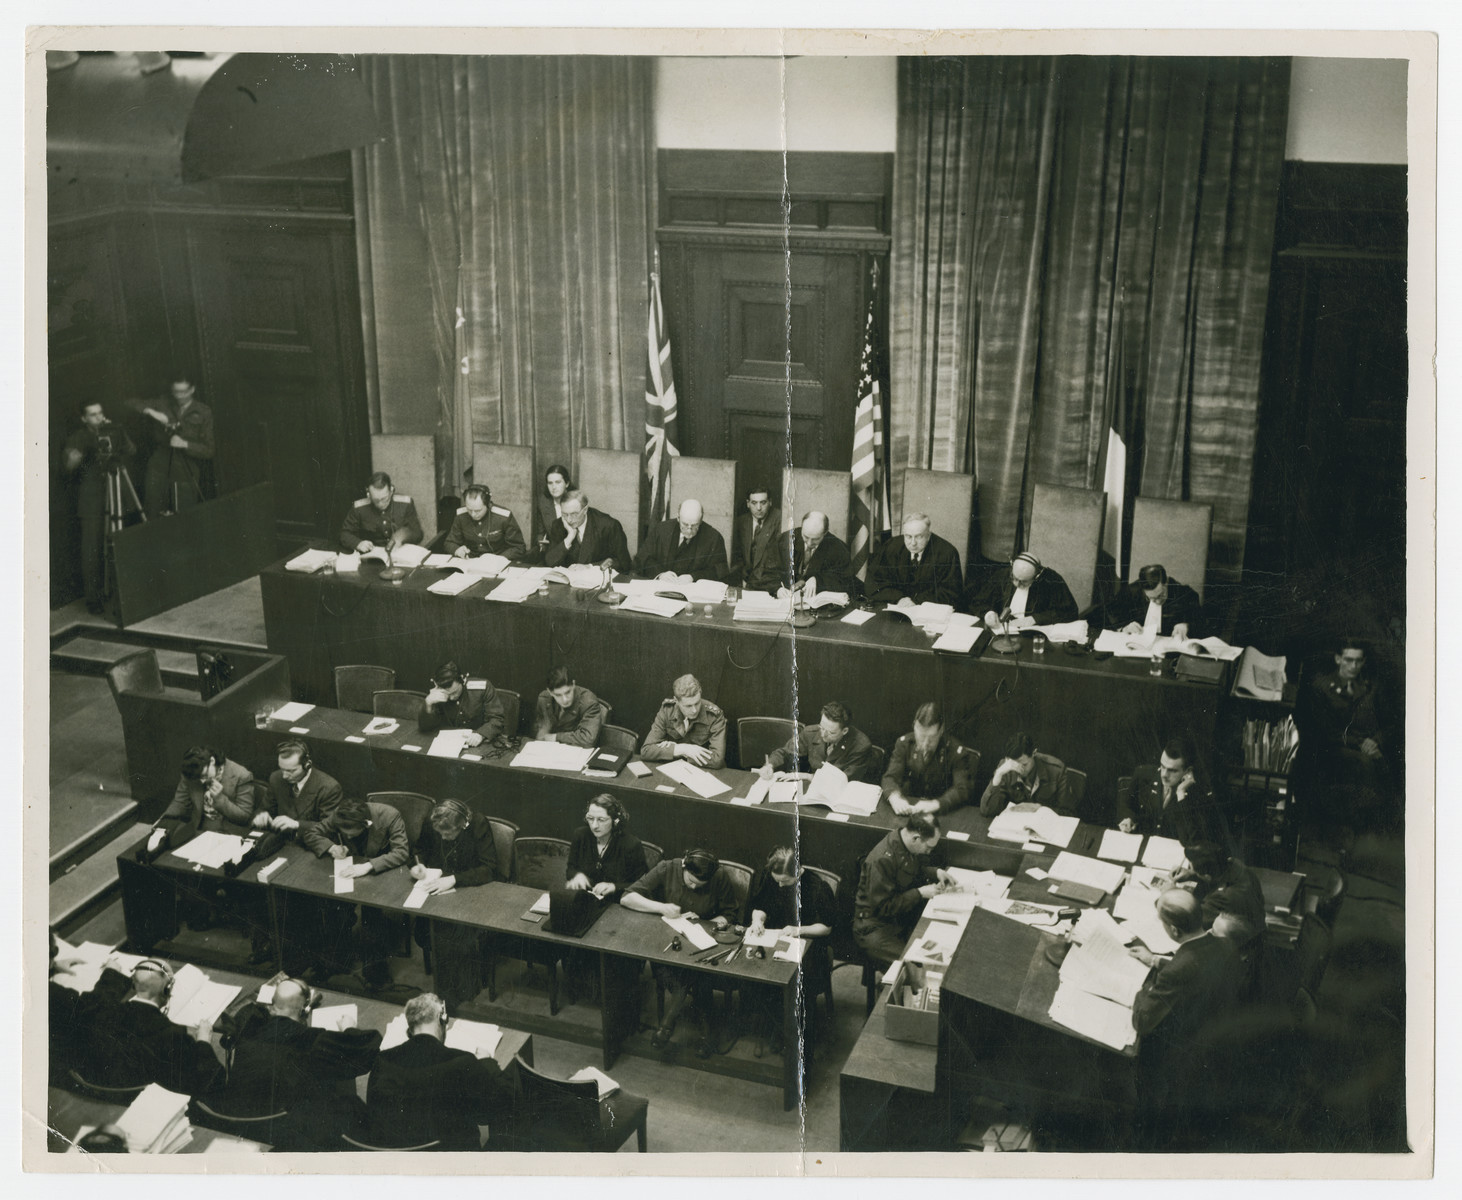 Overhead photo of the judges of the Nuremberg trials.